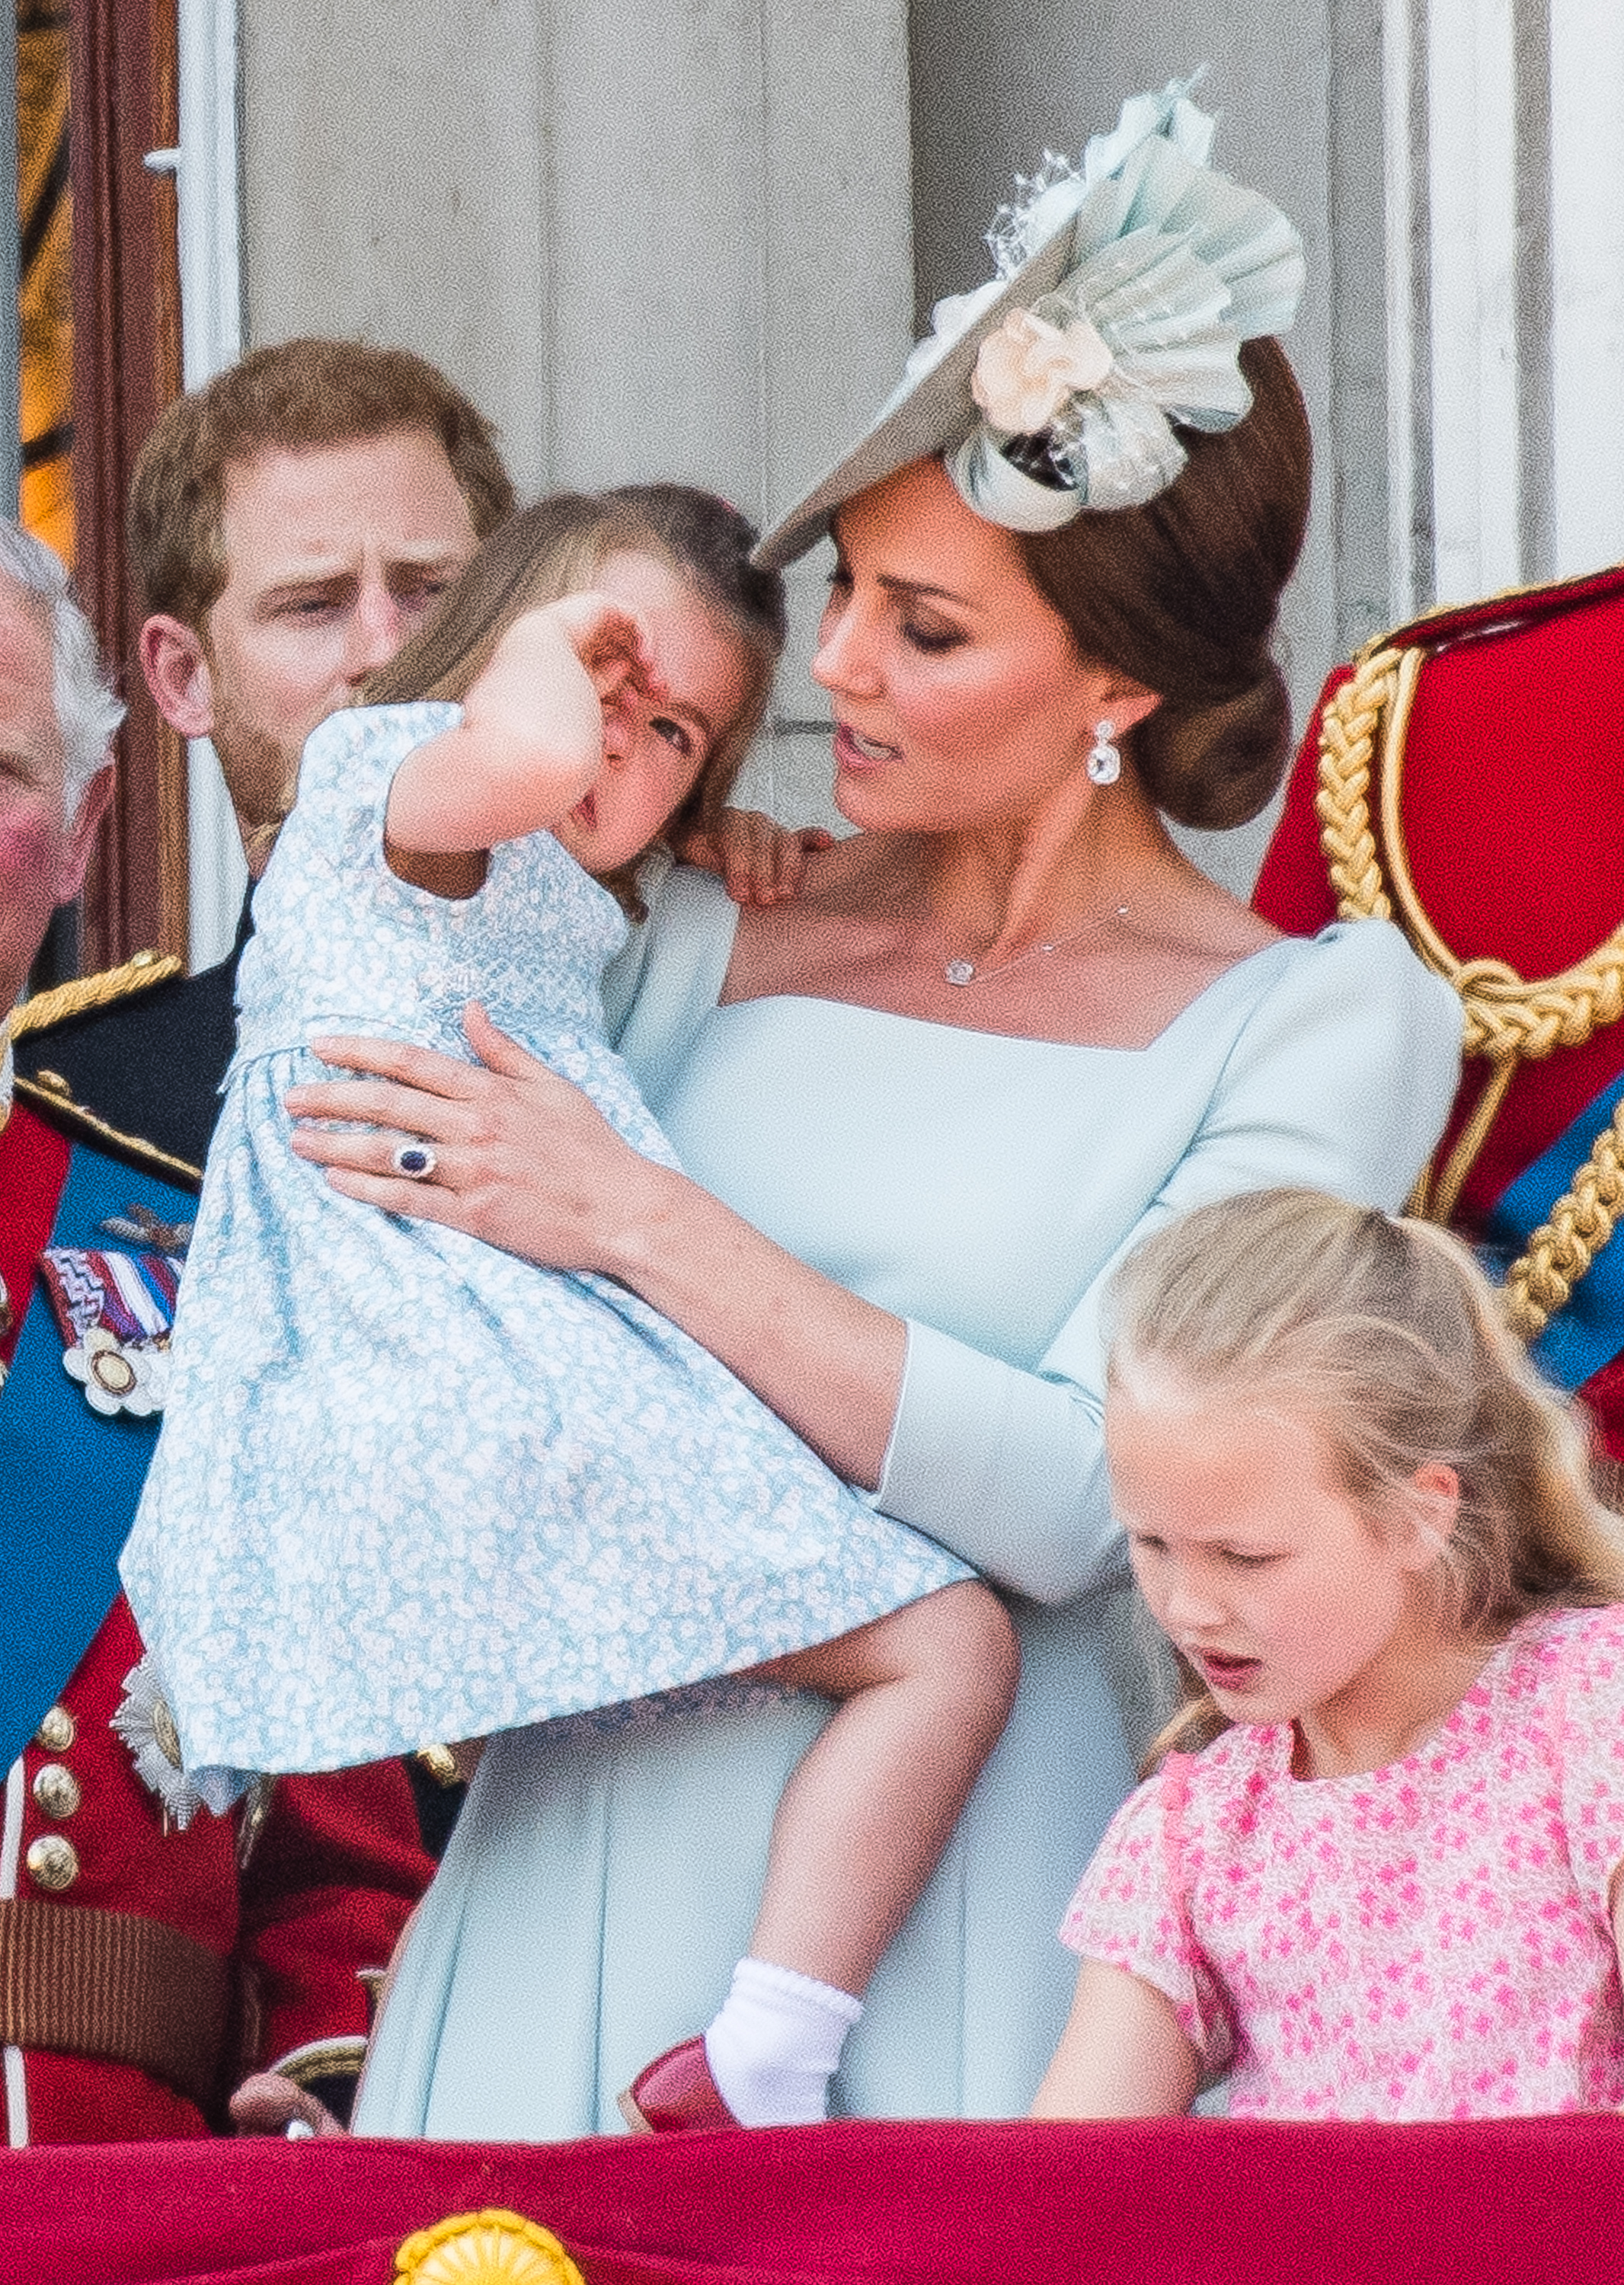 Kate-Middleton-Saves-The-Day-After-Princess-Charlotte-Cries-After-A-Fall-On-The-Buckingham-Palace-Balcony